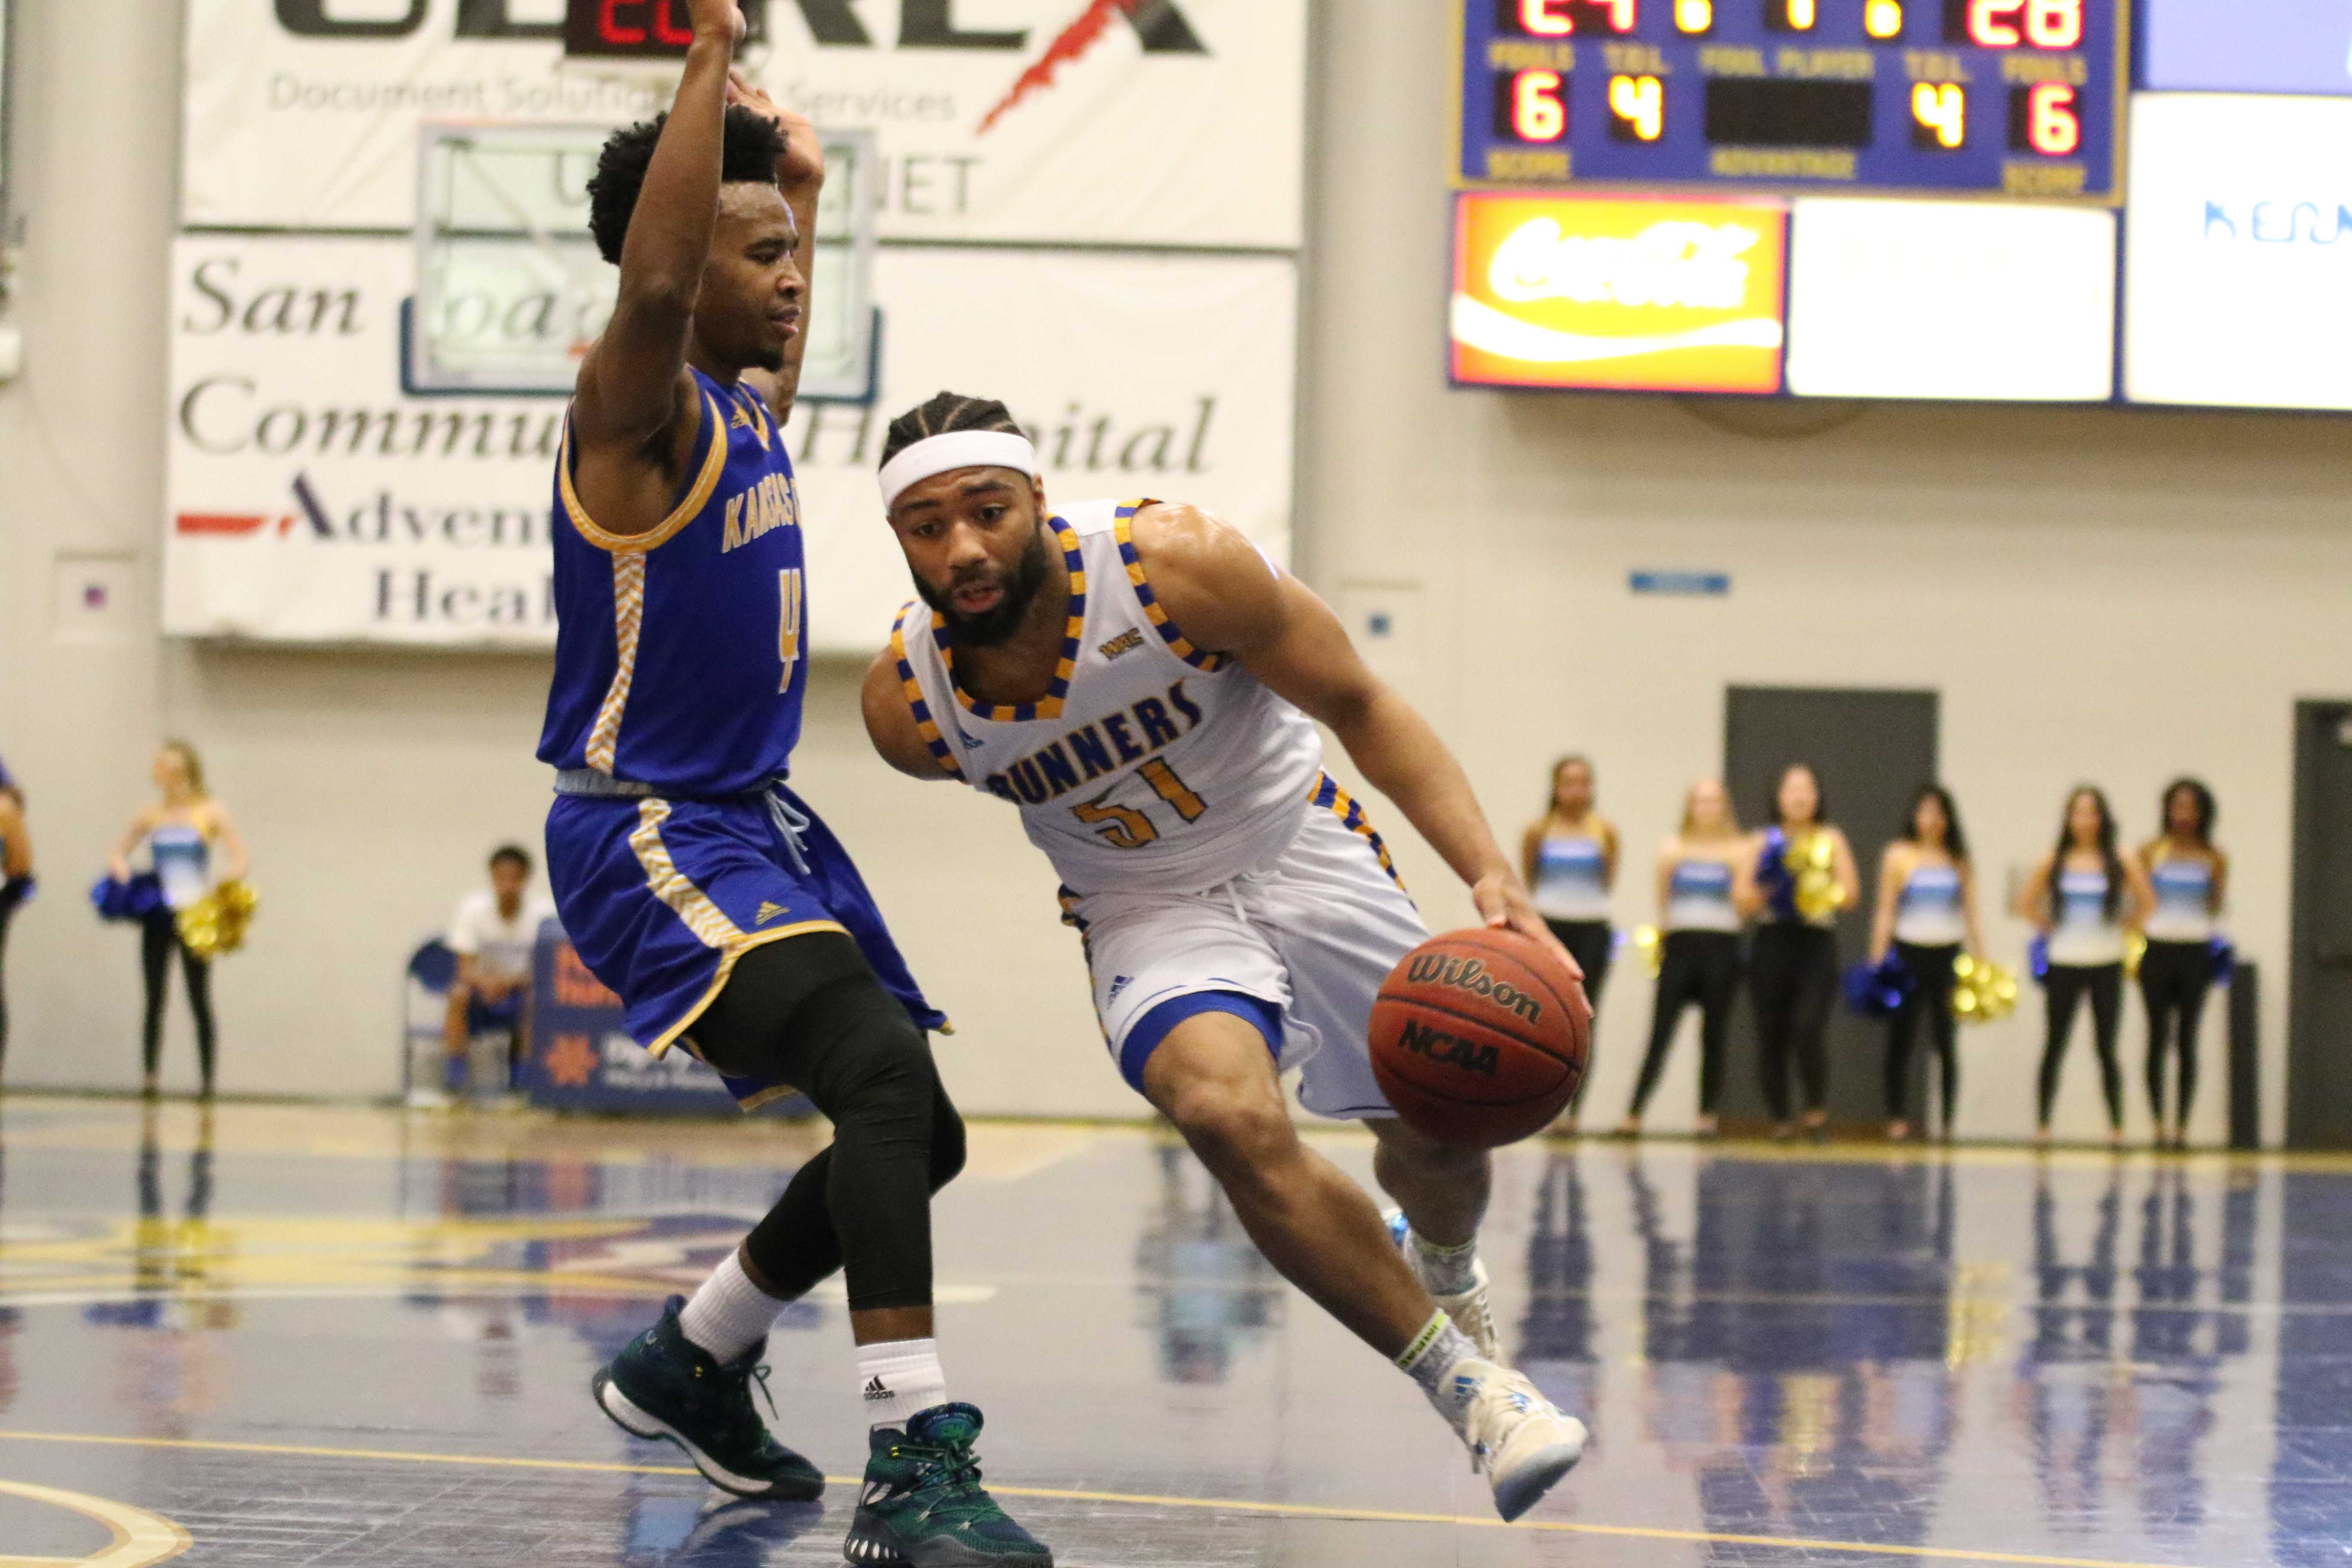 Roadrunners clinch share of conference title with 71-62 win